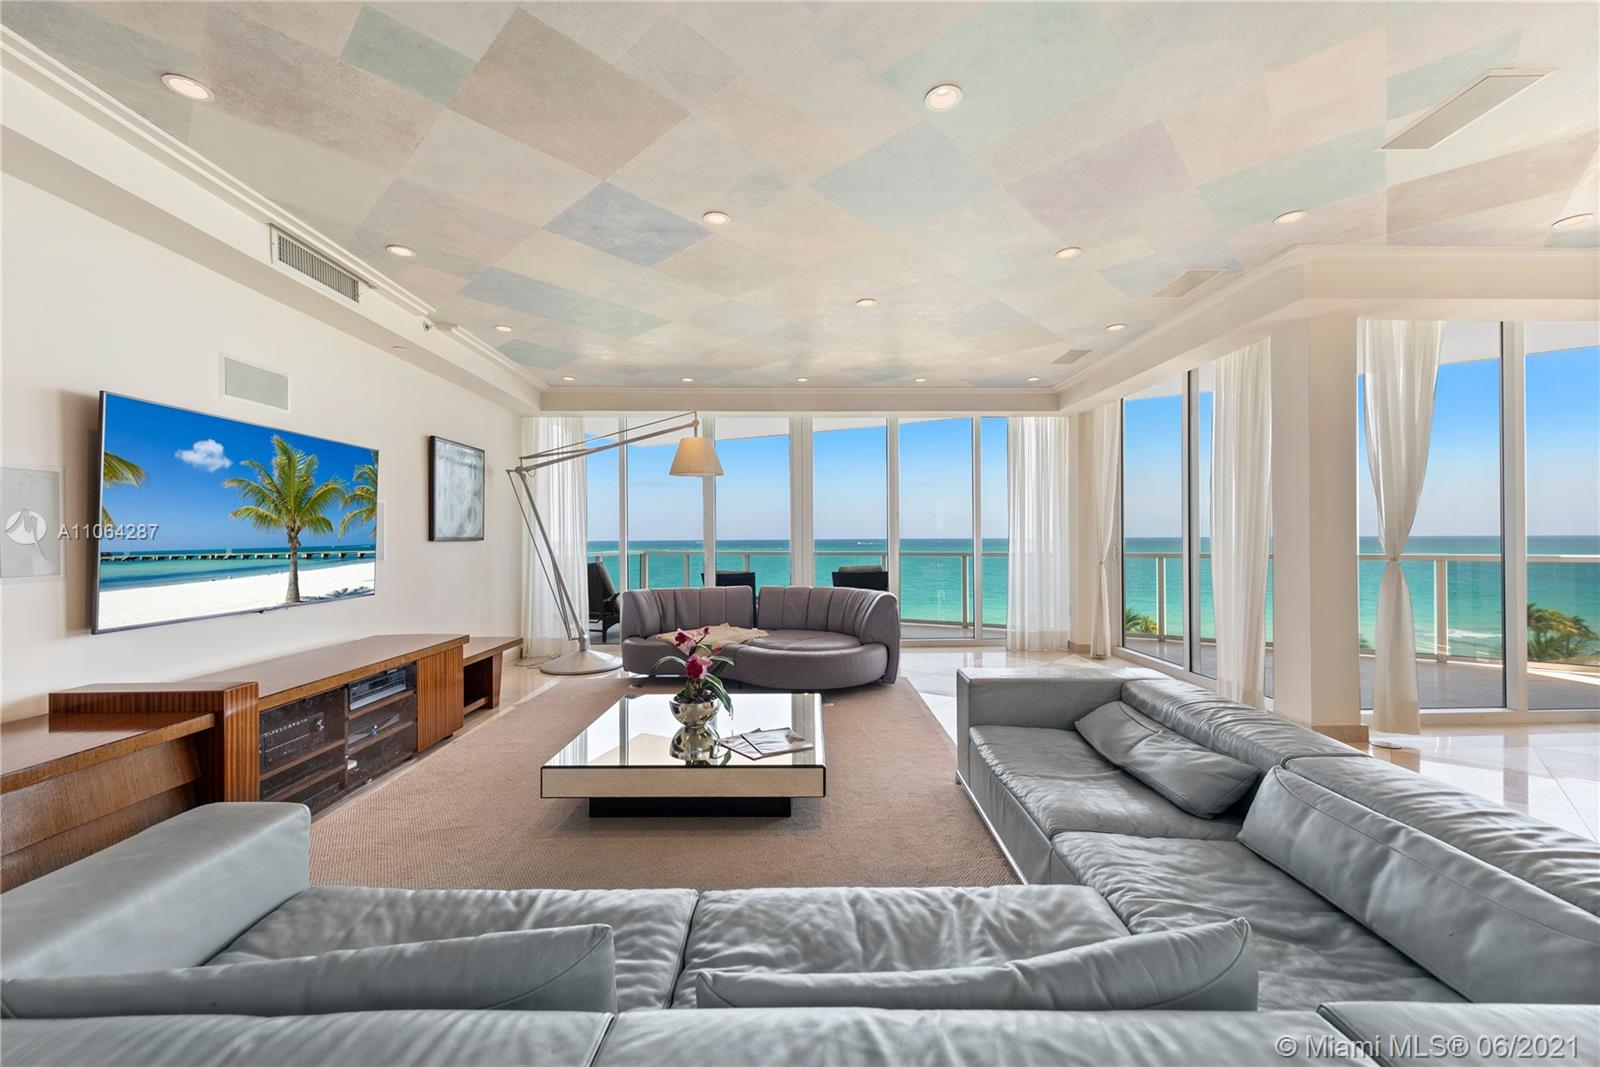 10225 Collins Ave, Unit #502/504 Luxury Real Estate